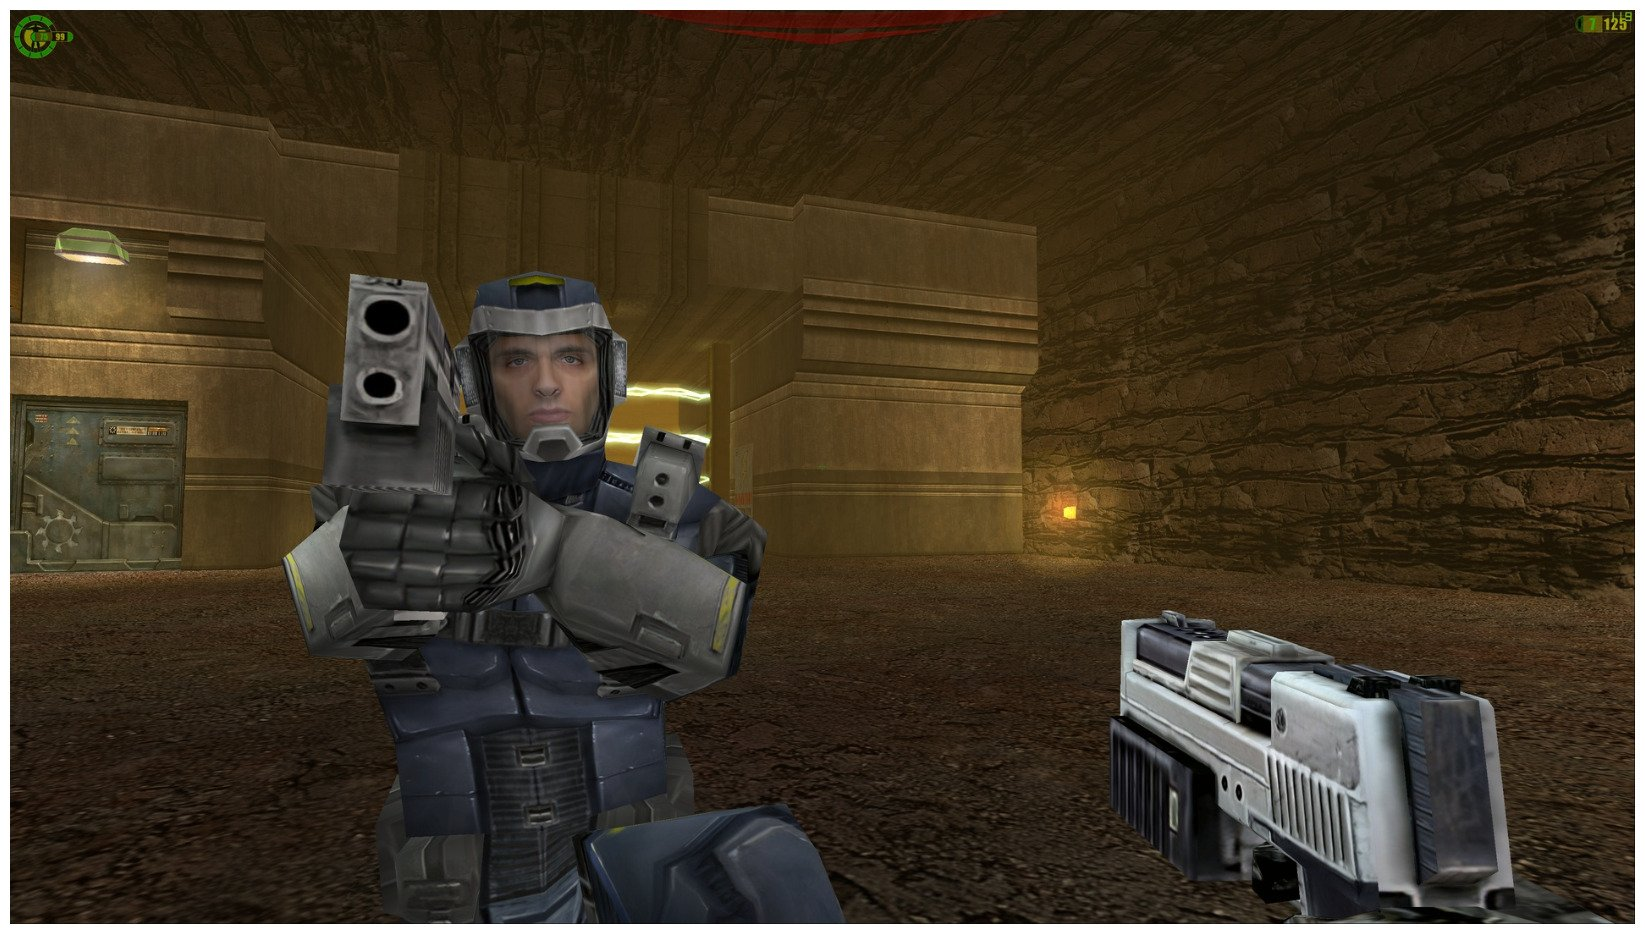 Image 7 : Red Faction transformé grâce à un pack de textures HD